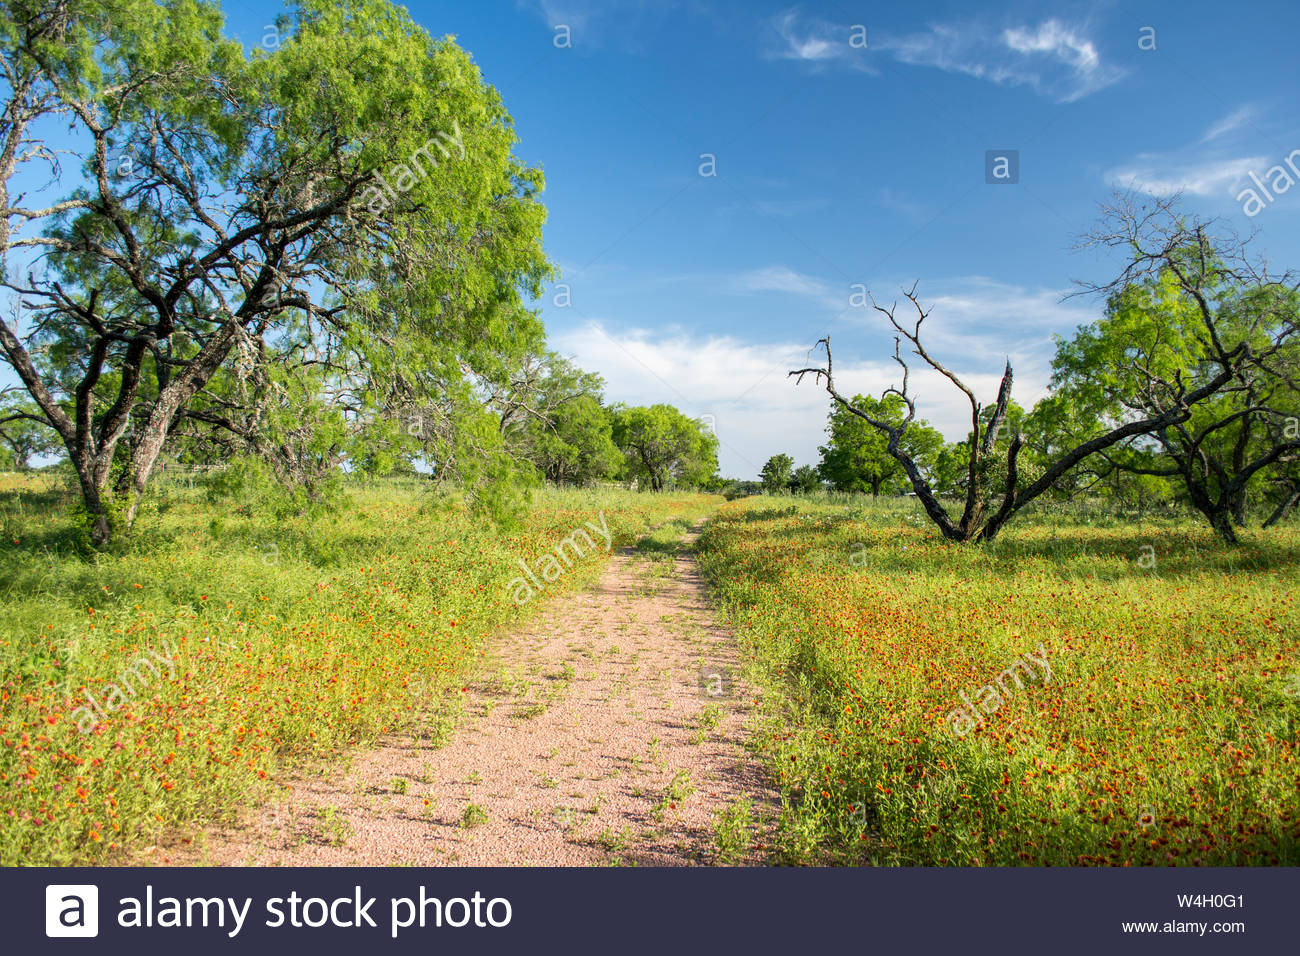 Texas Hill Country Scene. Texas Hill Country Paysage. Country Lane et de fleurs. Country lane, Texas Hill Country fleurs sauvages, les mesquites et le ciel. Banque D'Images